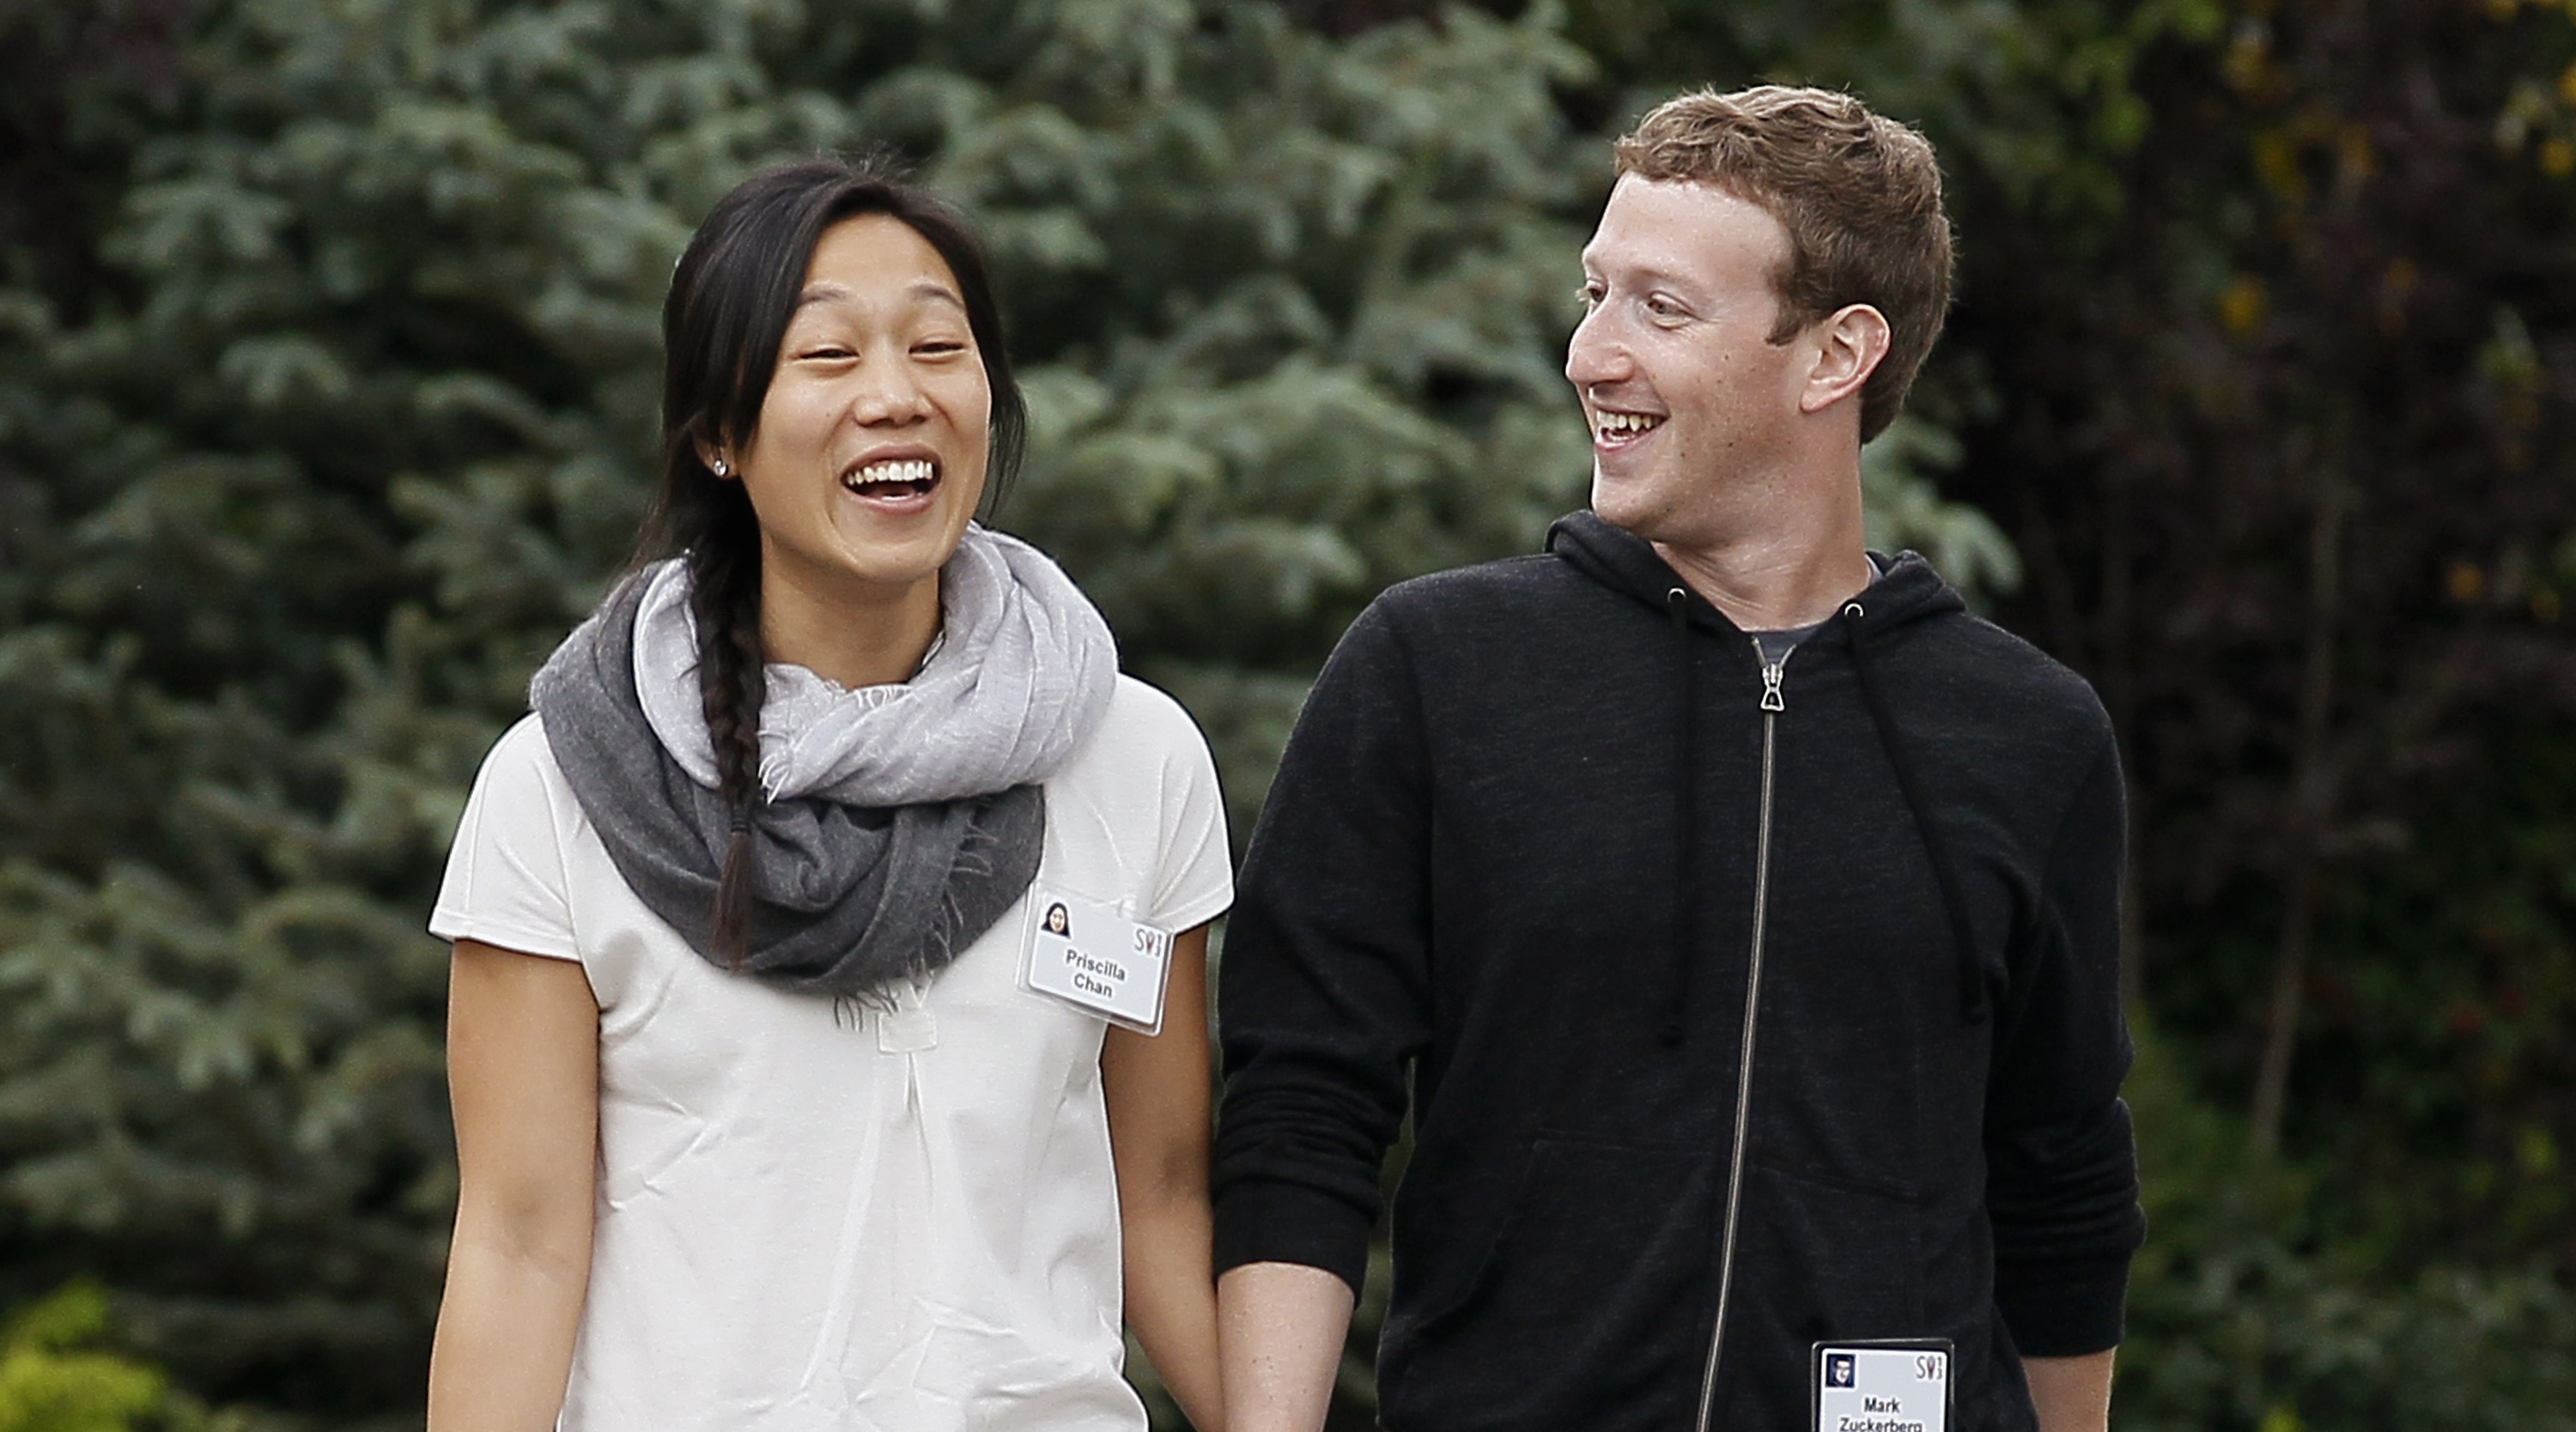 Facebook CEO Mark Zuckerberg walks with his wife Priscilla Chan at the annual Allen and Co. conference at the Sun Valley, Idaho Resort July 11, 2013.  REUTERS/Rick Wilking (UNITED STATES - Tags: BUSINESS) - RTX11KBZ